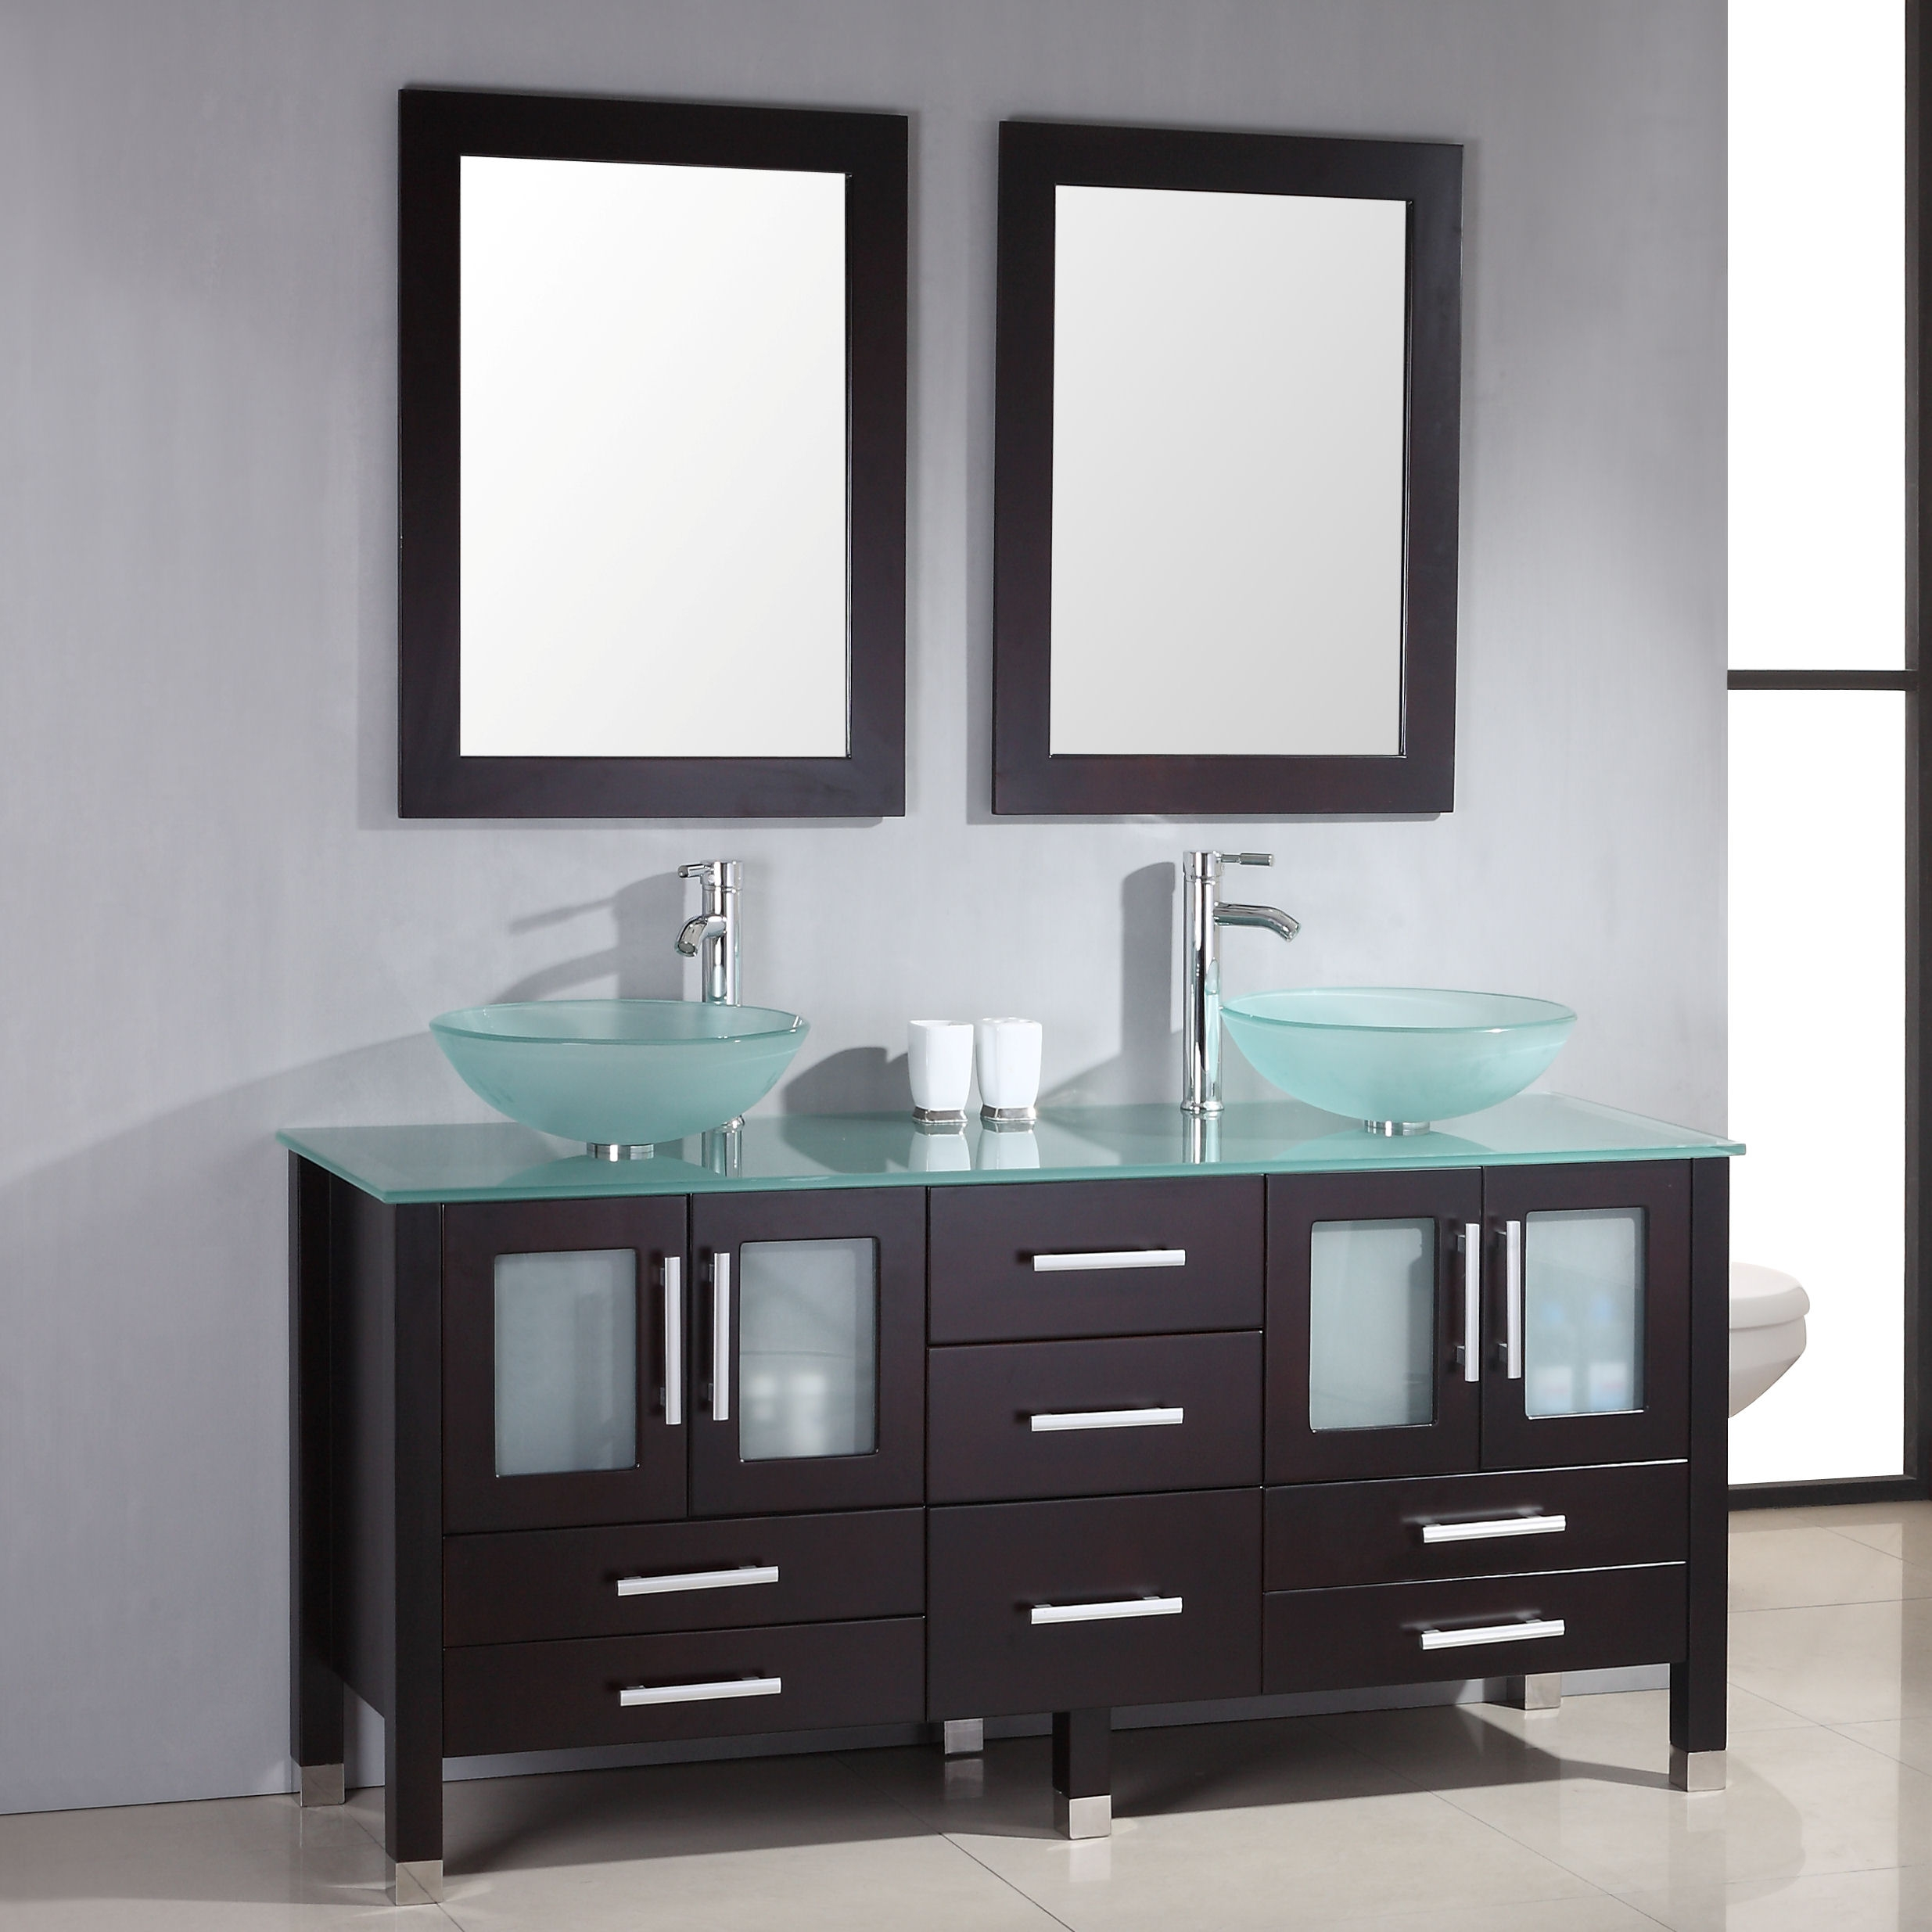 Modern Bathroom Vanities For Vessel Sinks